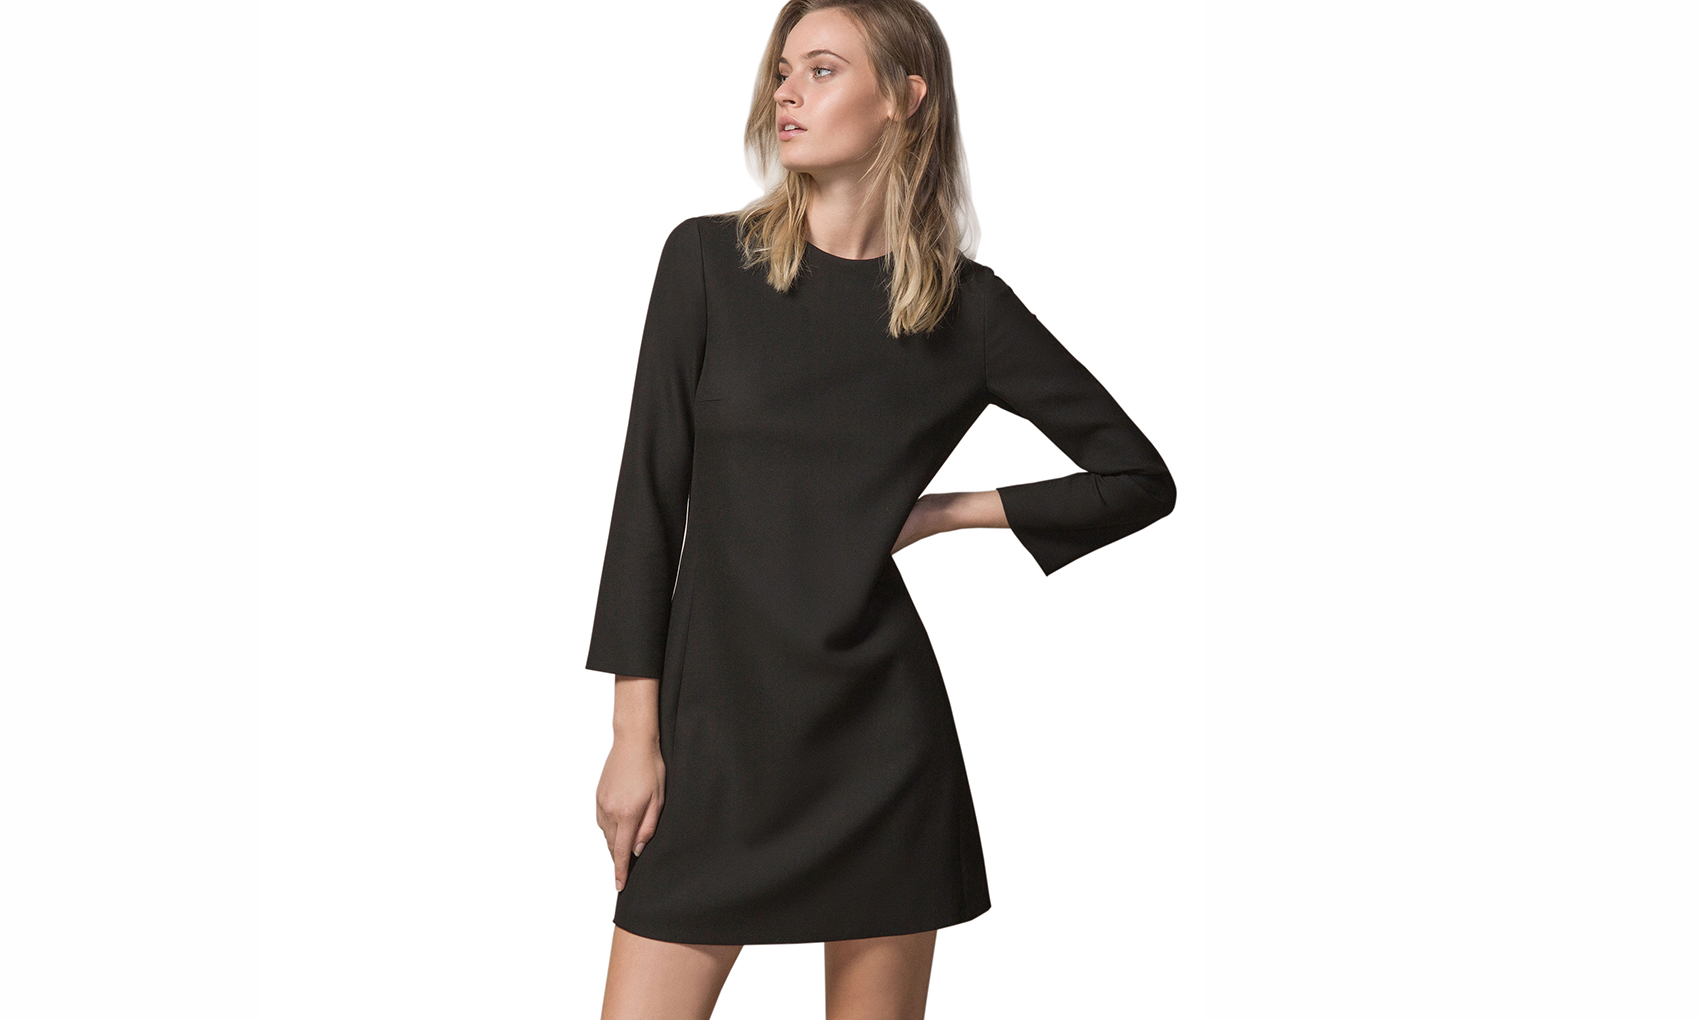 Massimo Dutti Black Dress With Belled Sleeves